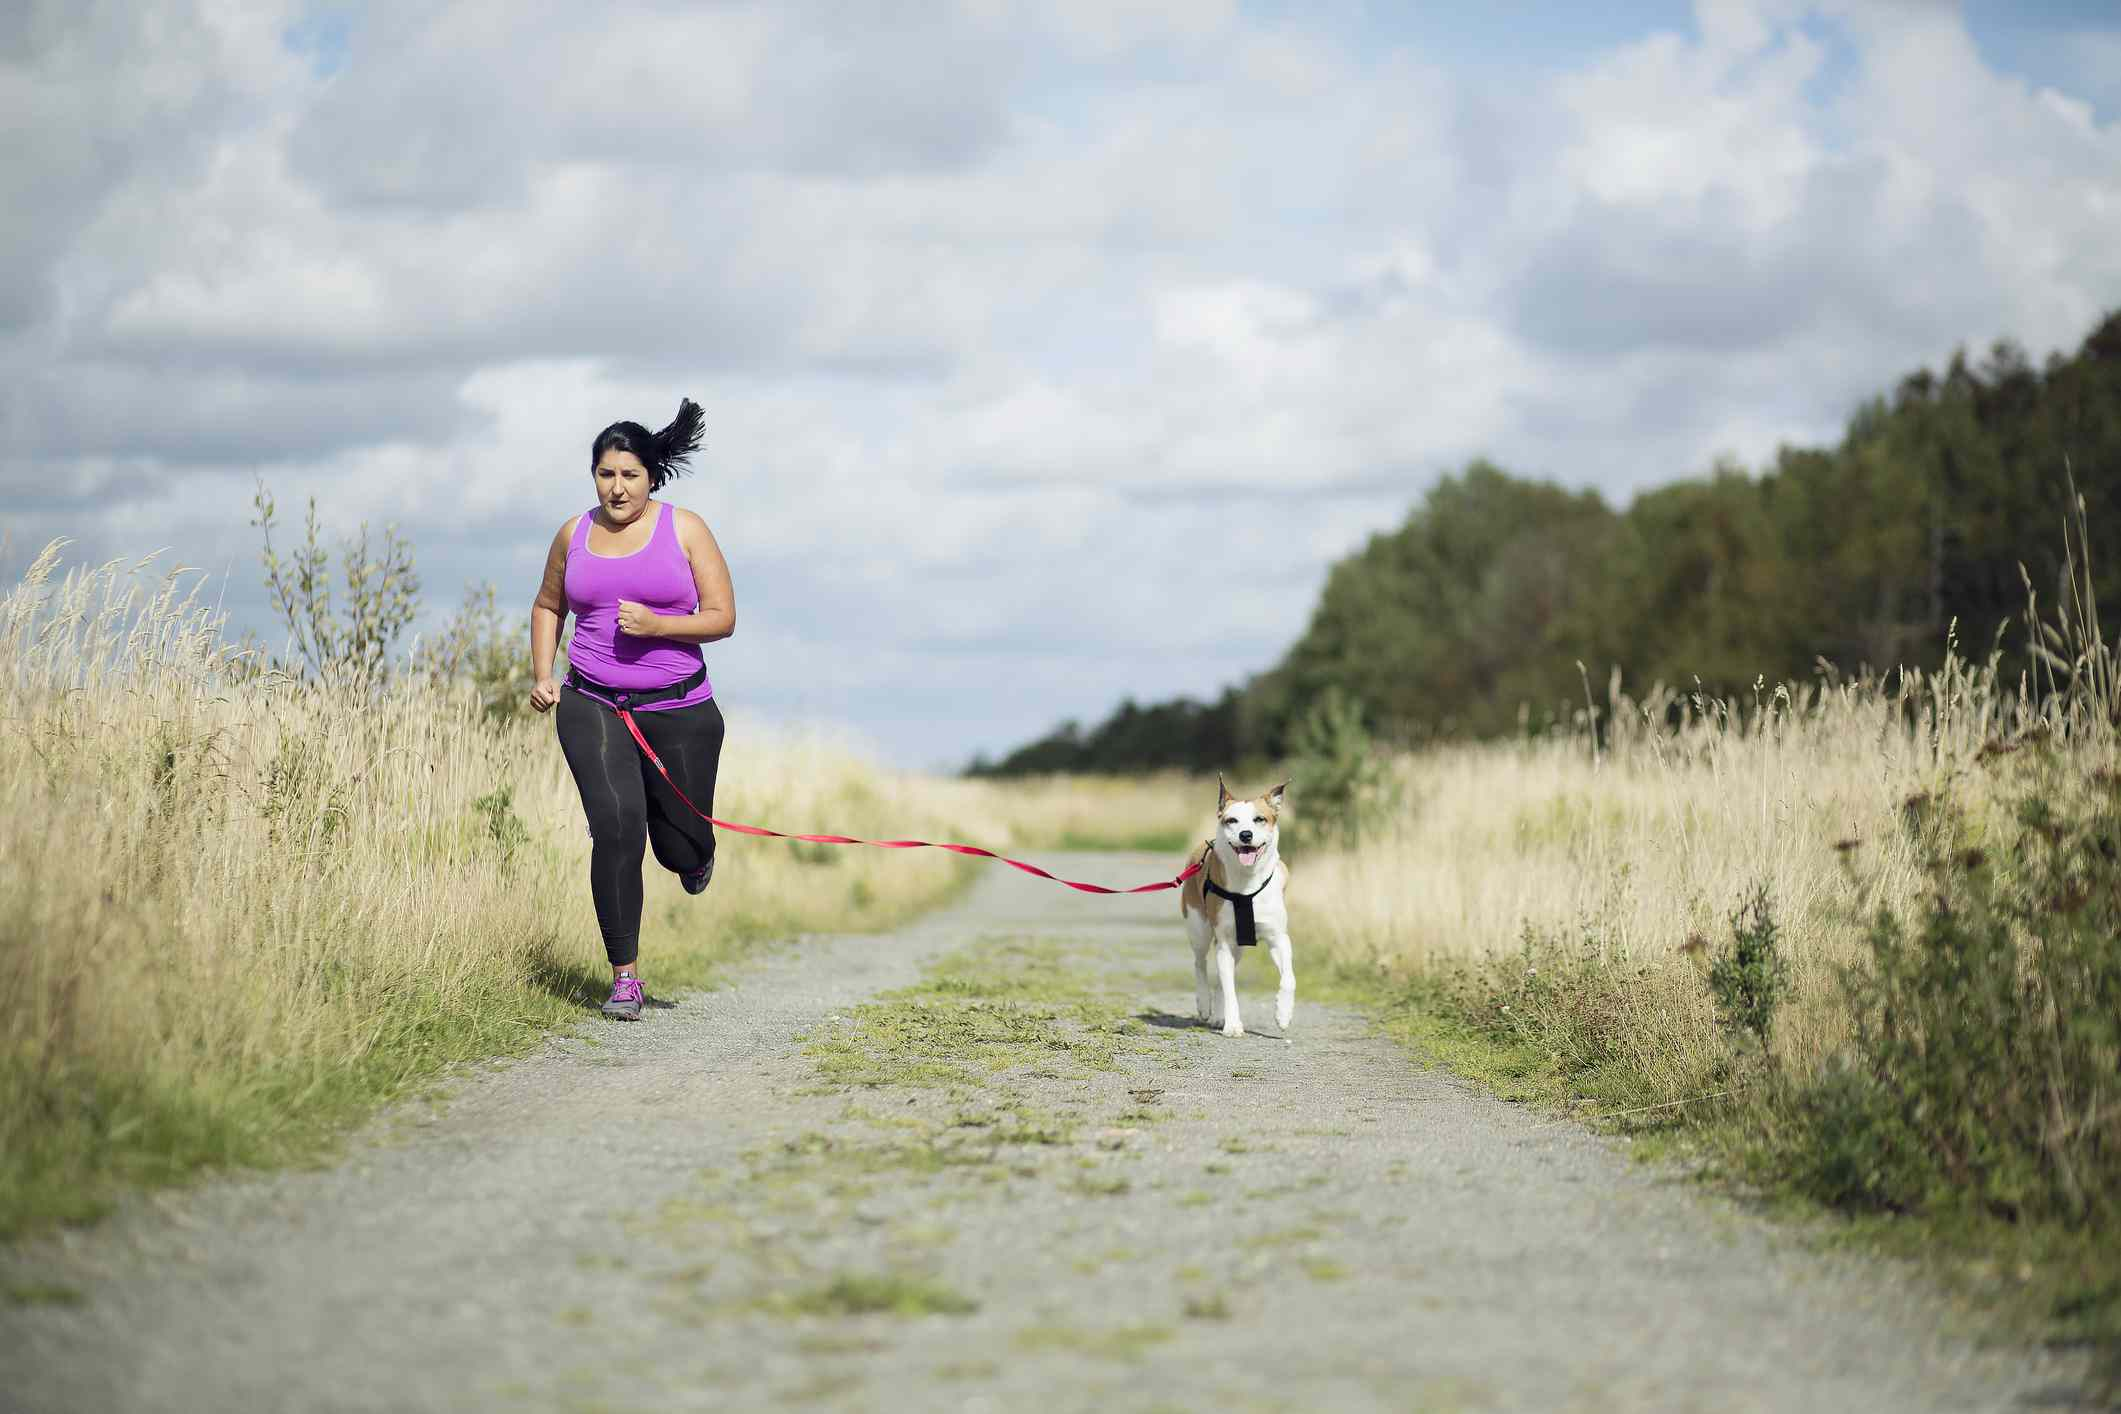 Female jogger running with dog on leash